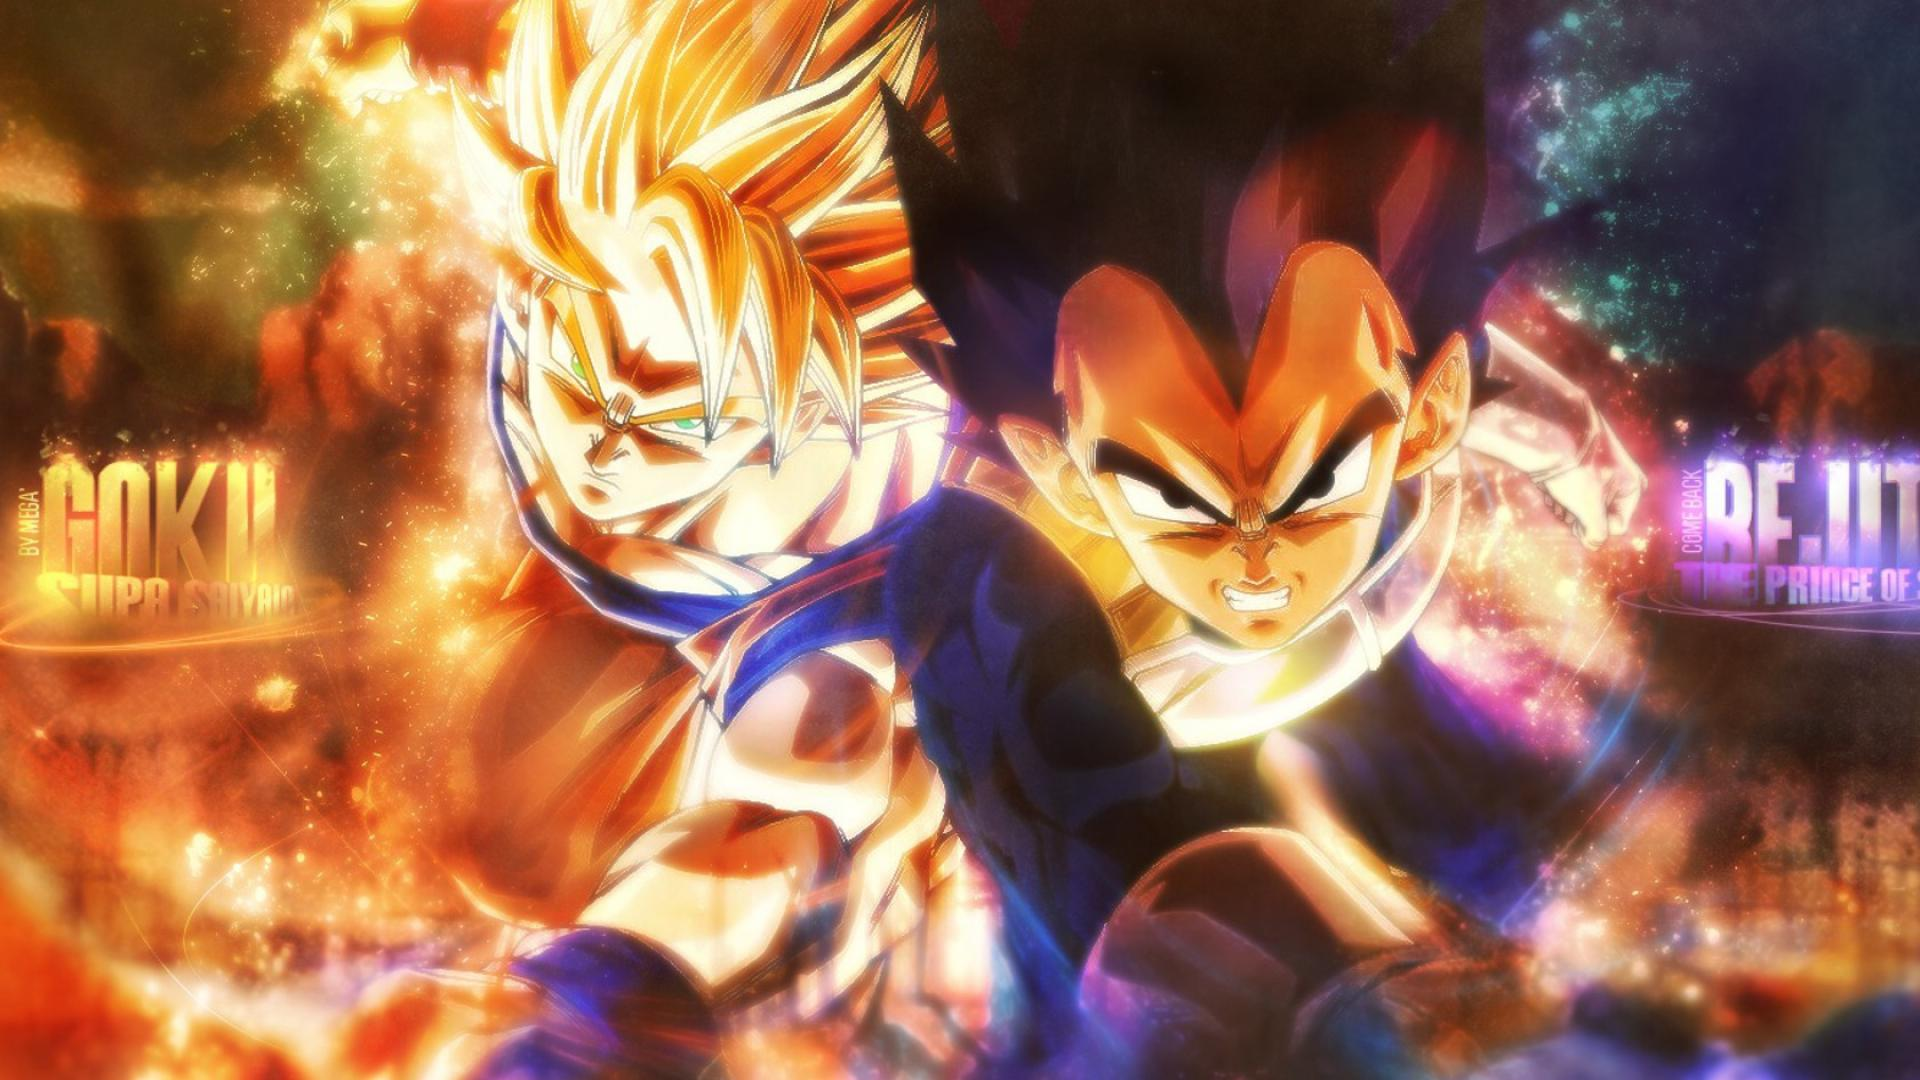 Dragon Ball Super Goku And Vegeta Wallpaper Hd 1920x1080 Wallpaper Teahub Io